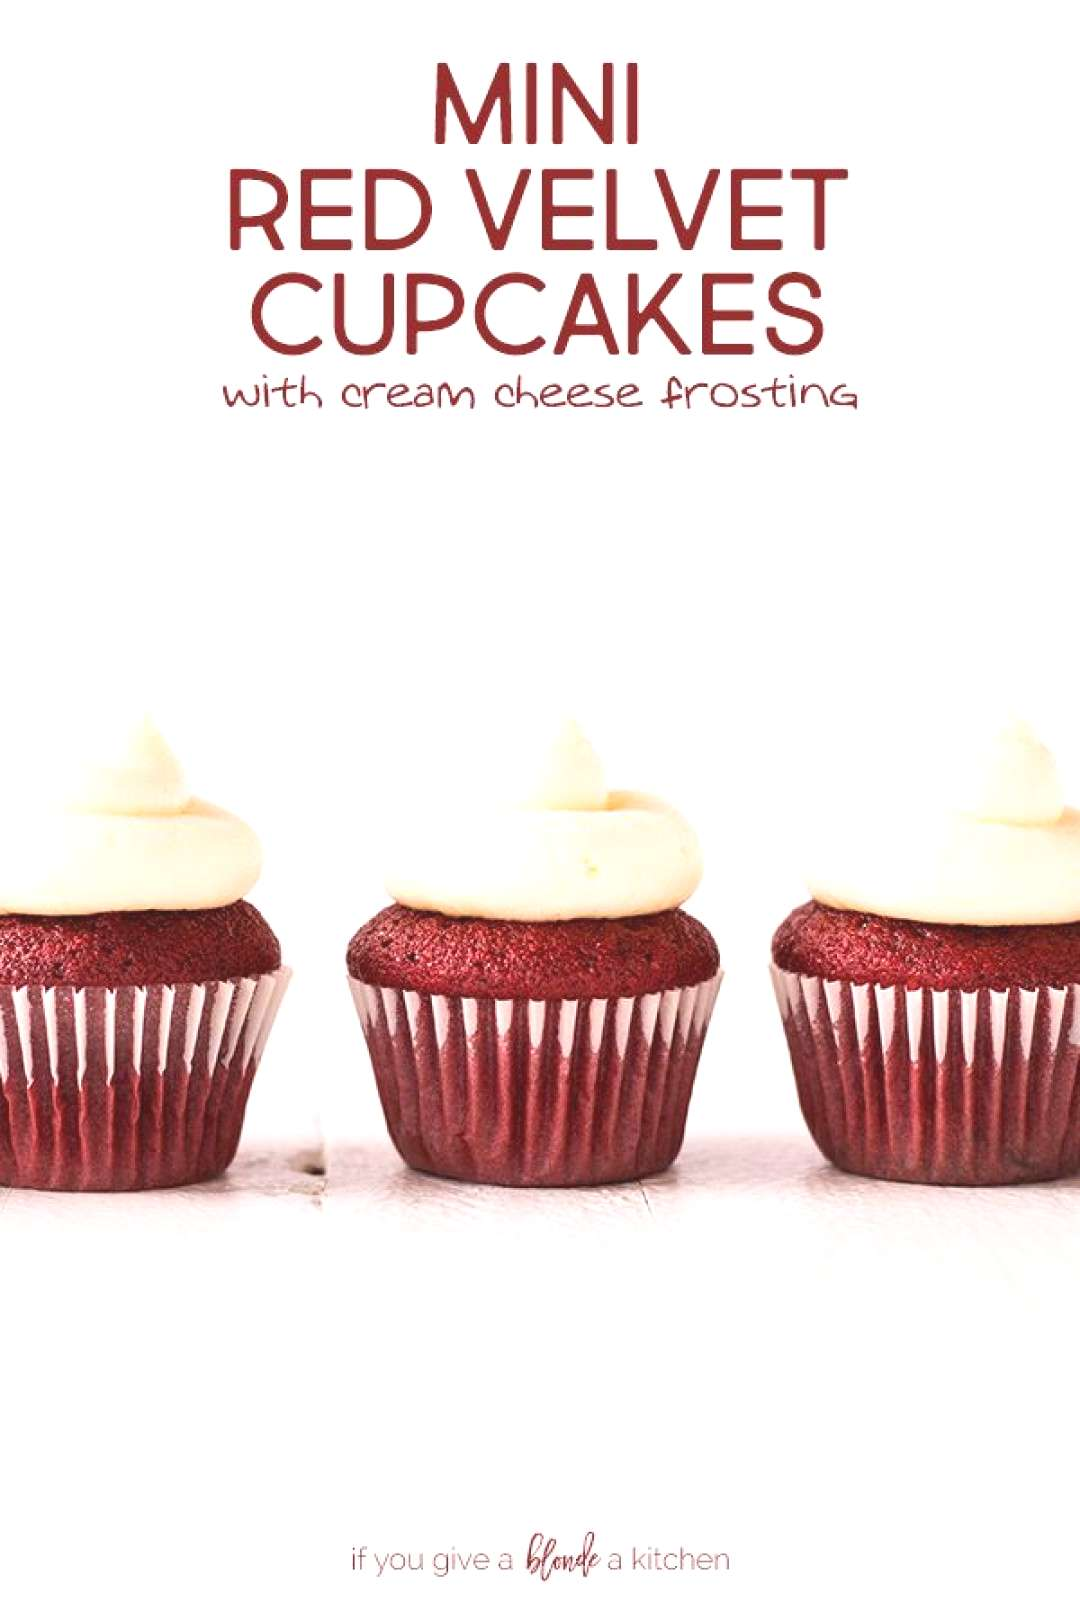 Mini red velvet cupcakes are bite-sized cupcakes topped with rich cream cheese frosting. Use butter